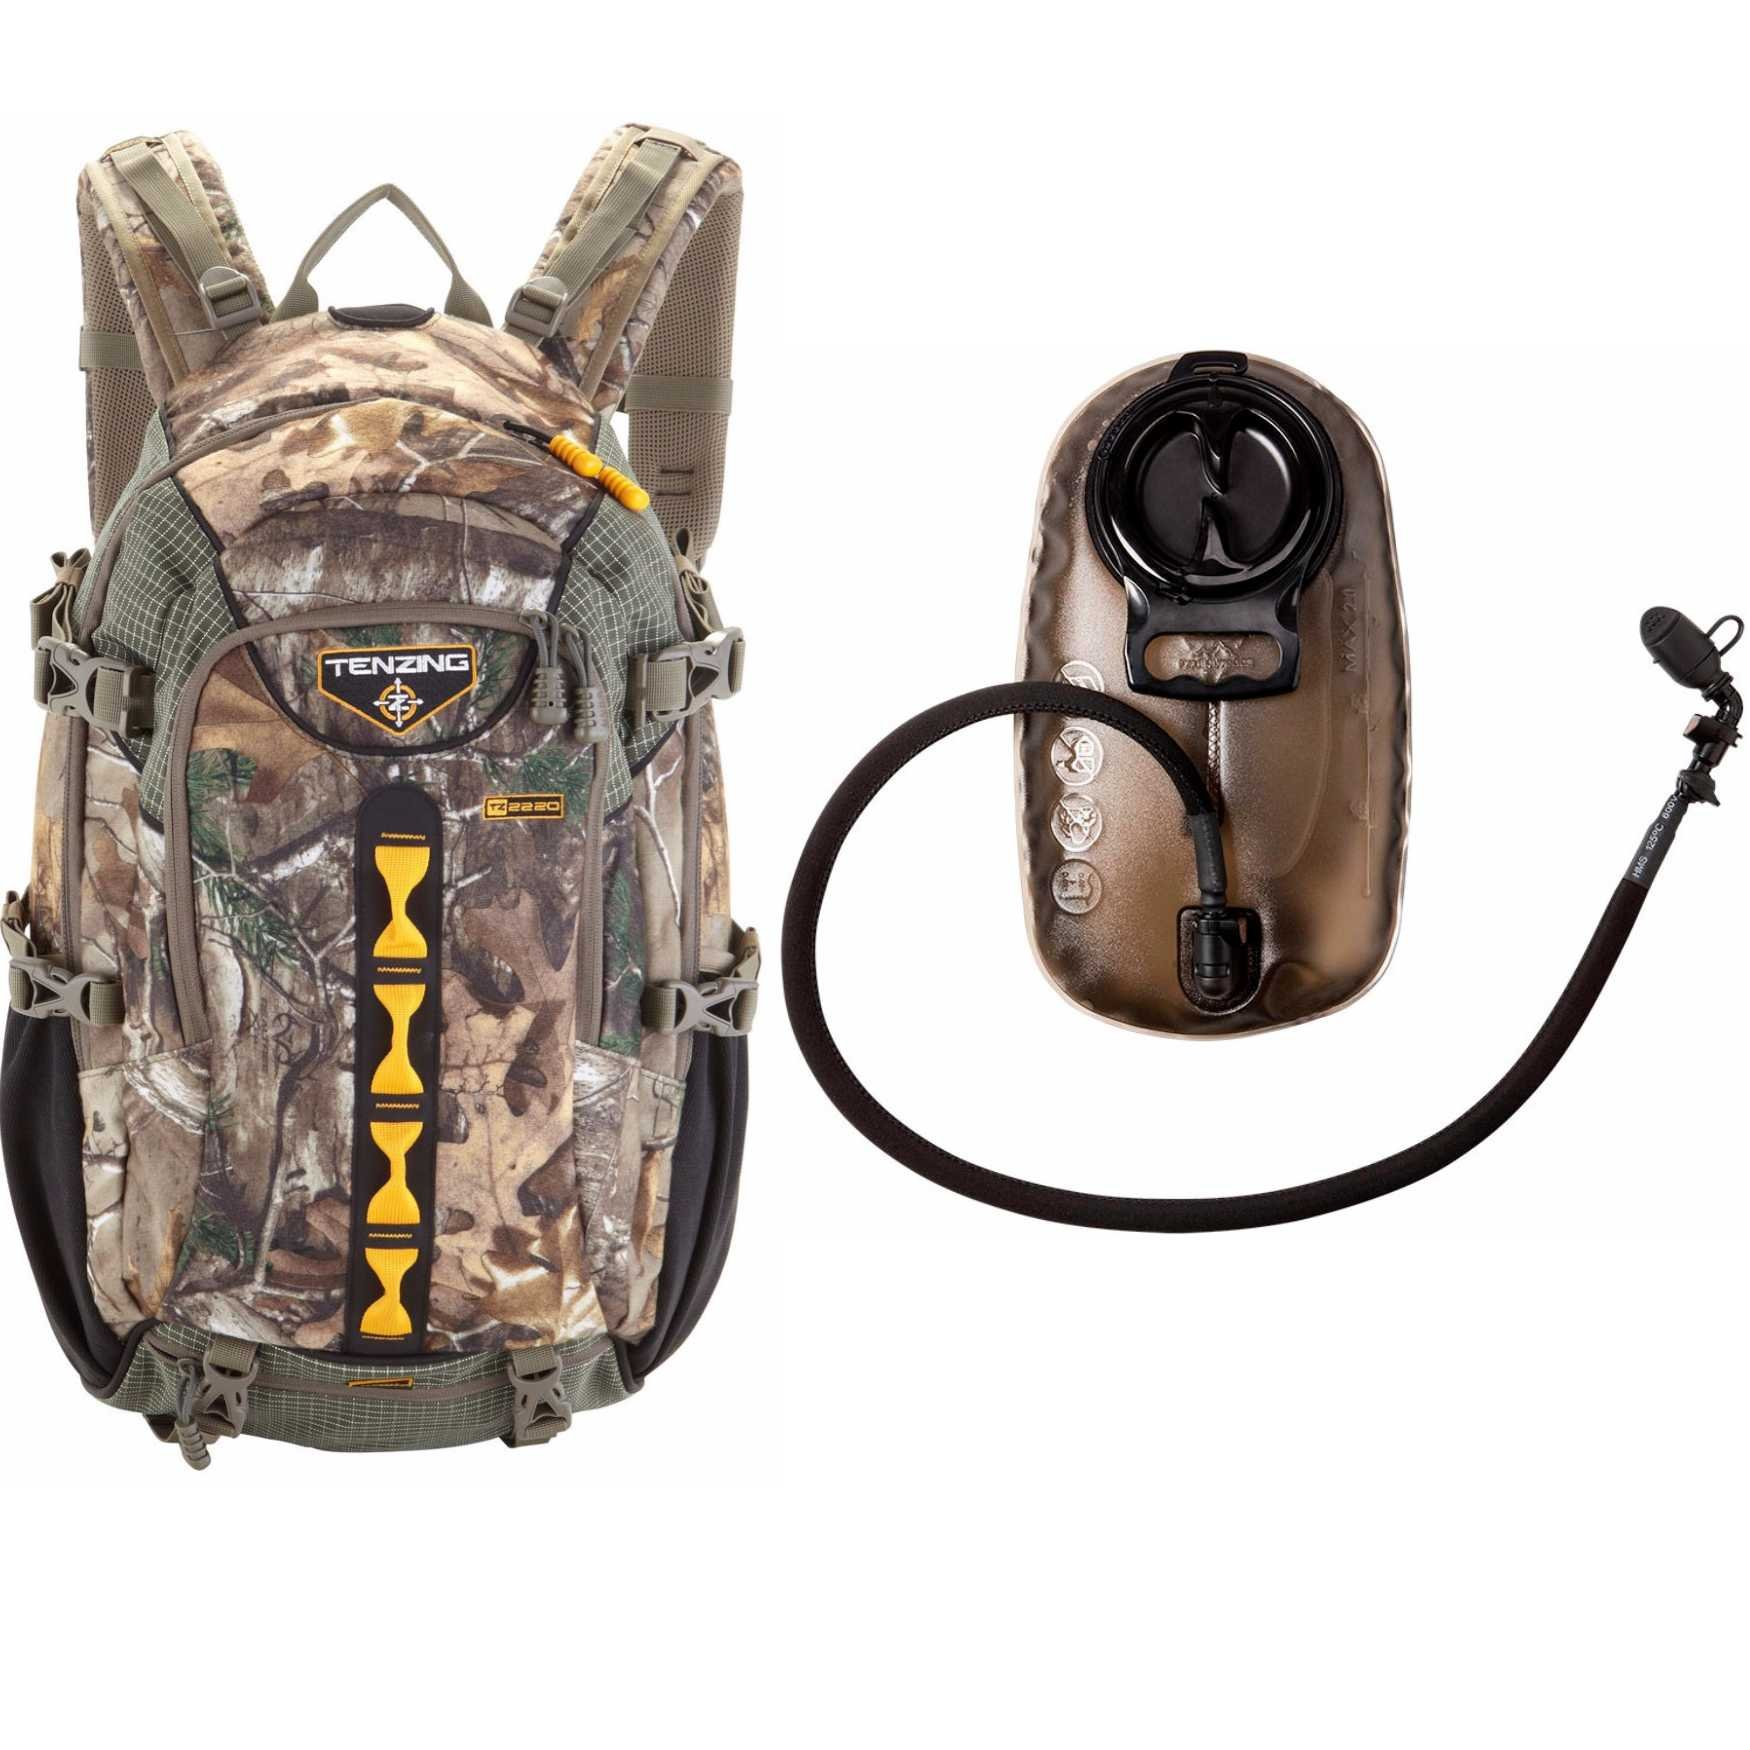 Tenzing TZ 2220 Game Hunting Day Pack Backpack (Realtree Max Xtra Camo) with 2.0L Hydration Reservoir